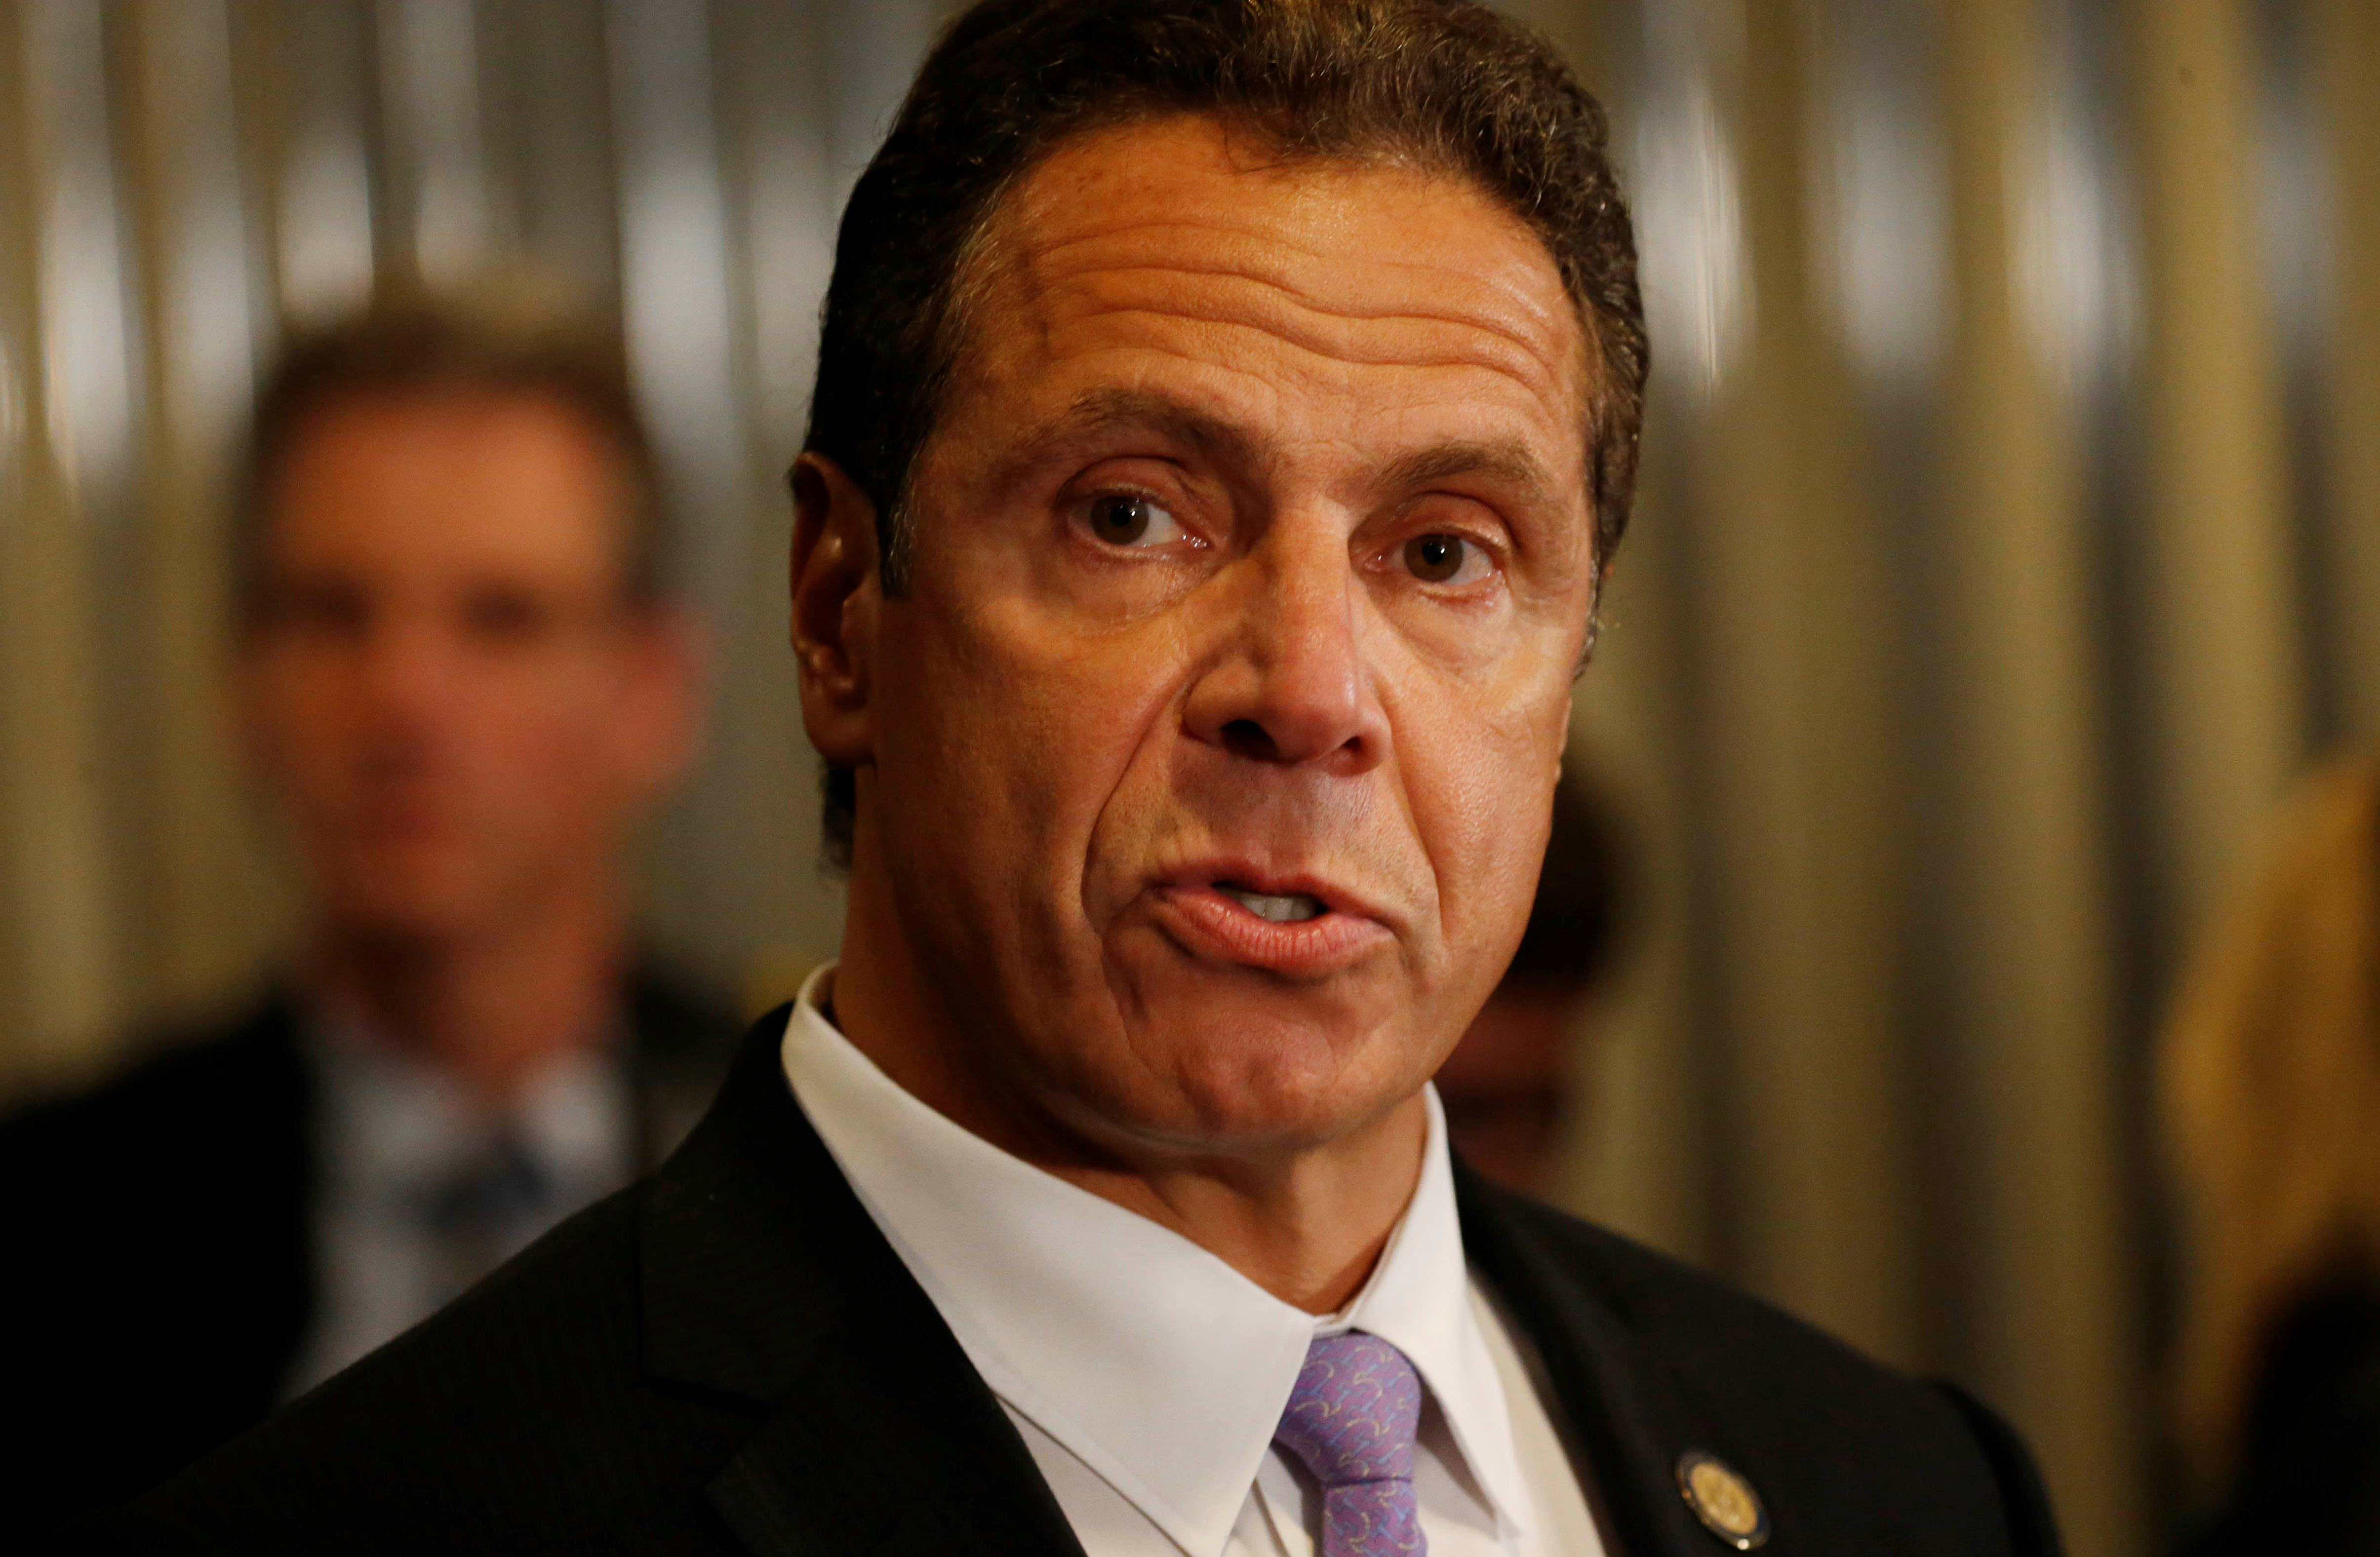 Gov. Cuomo said he's not in a rush to pass the budget after an emergency extender was passed to keep government functioning through May 31. (Derek Gee/Buffalo News)